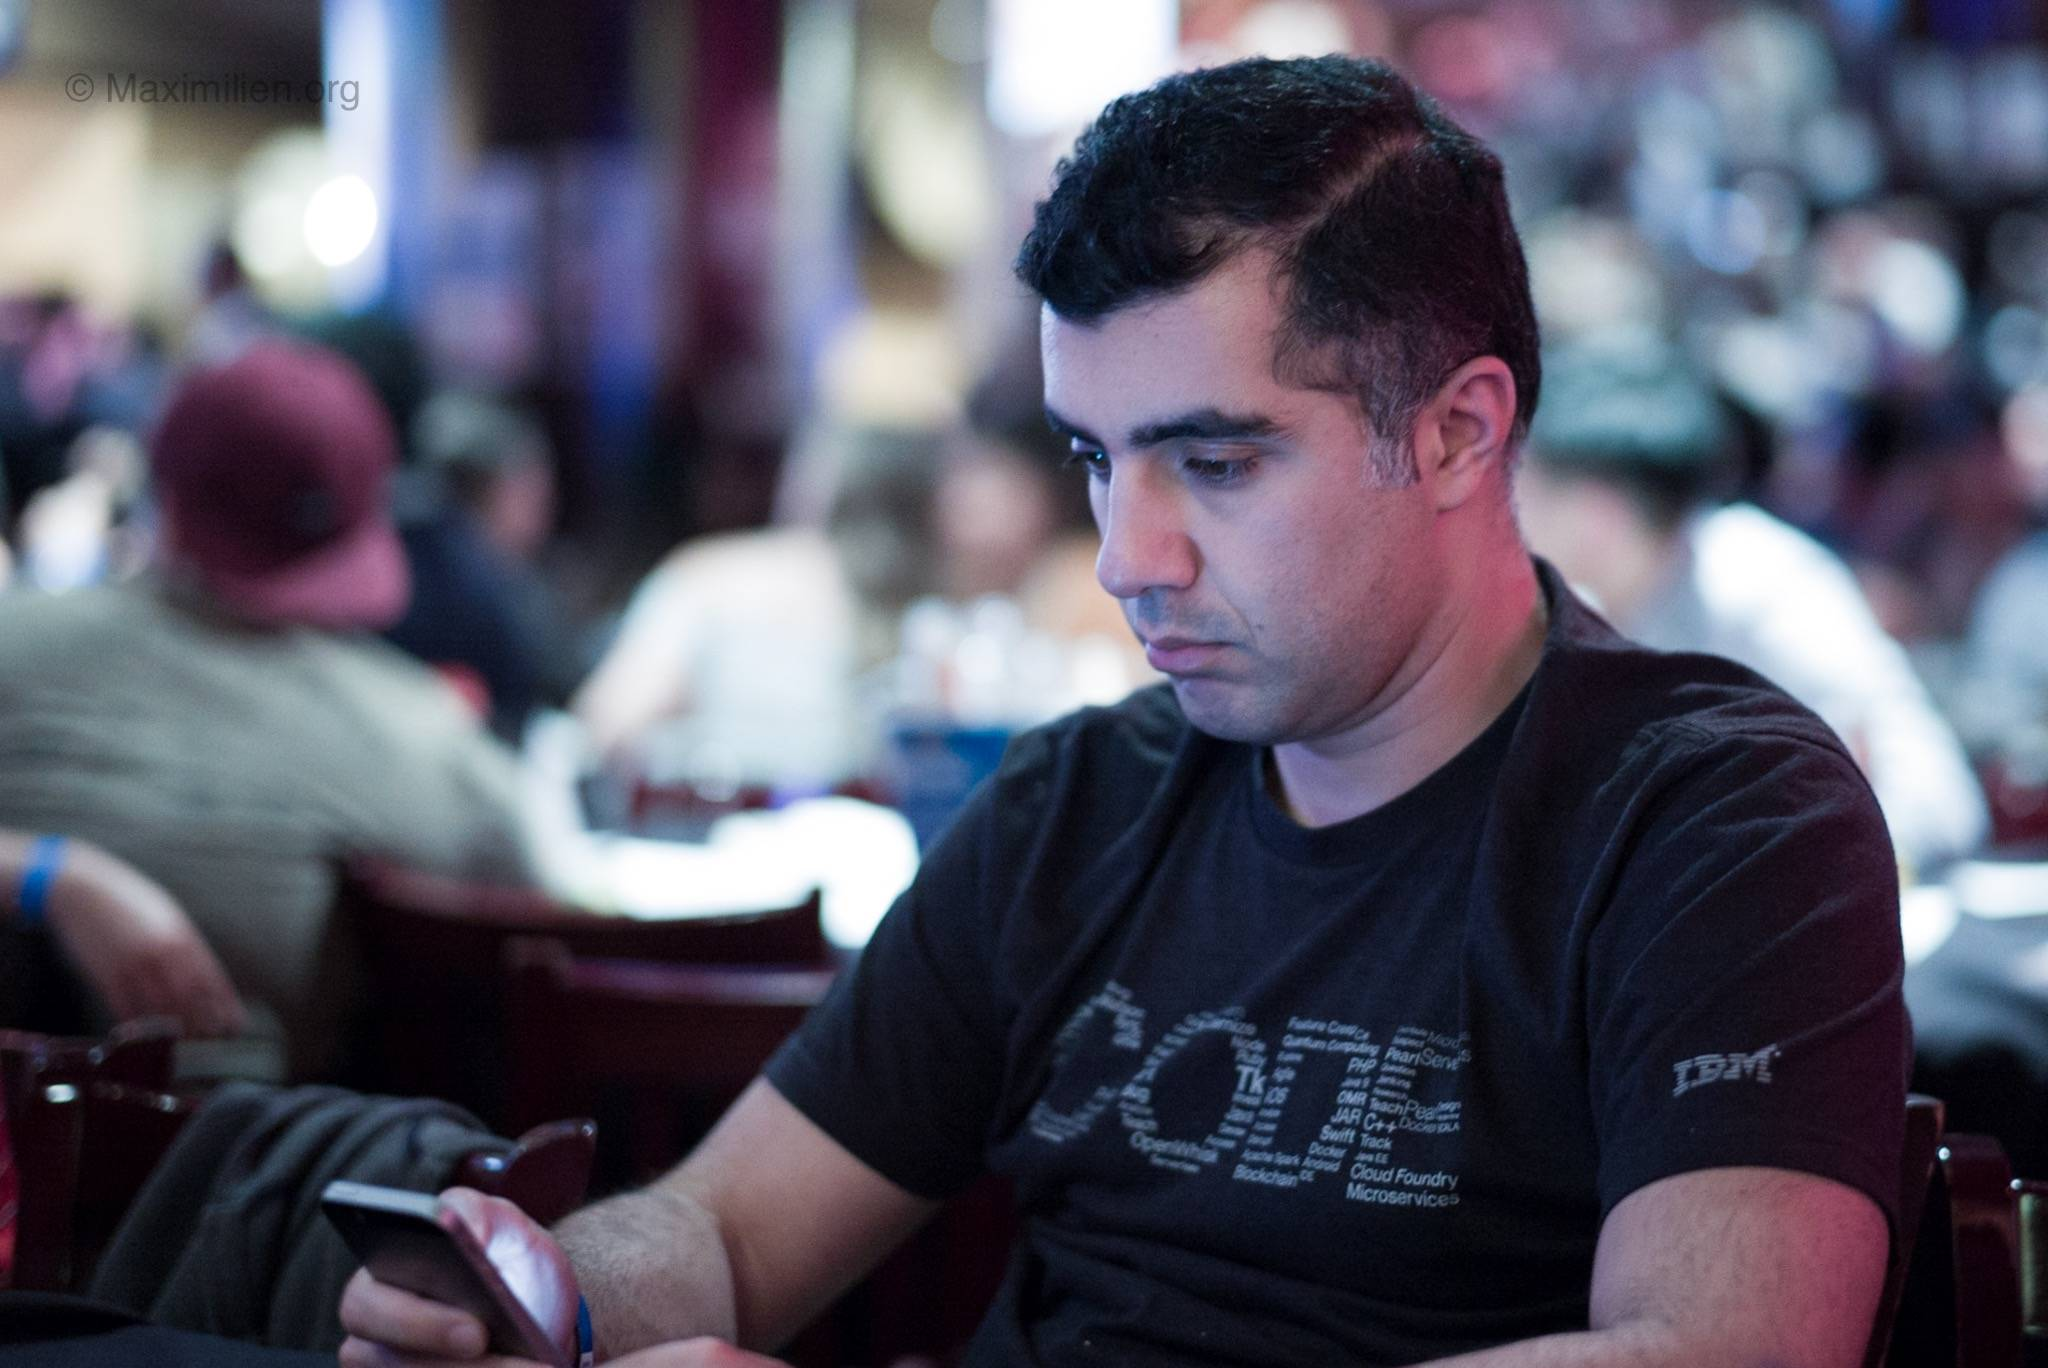 Modern developer, Nima Kaviani of IBM, pairing in the age of mobile workers